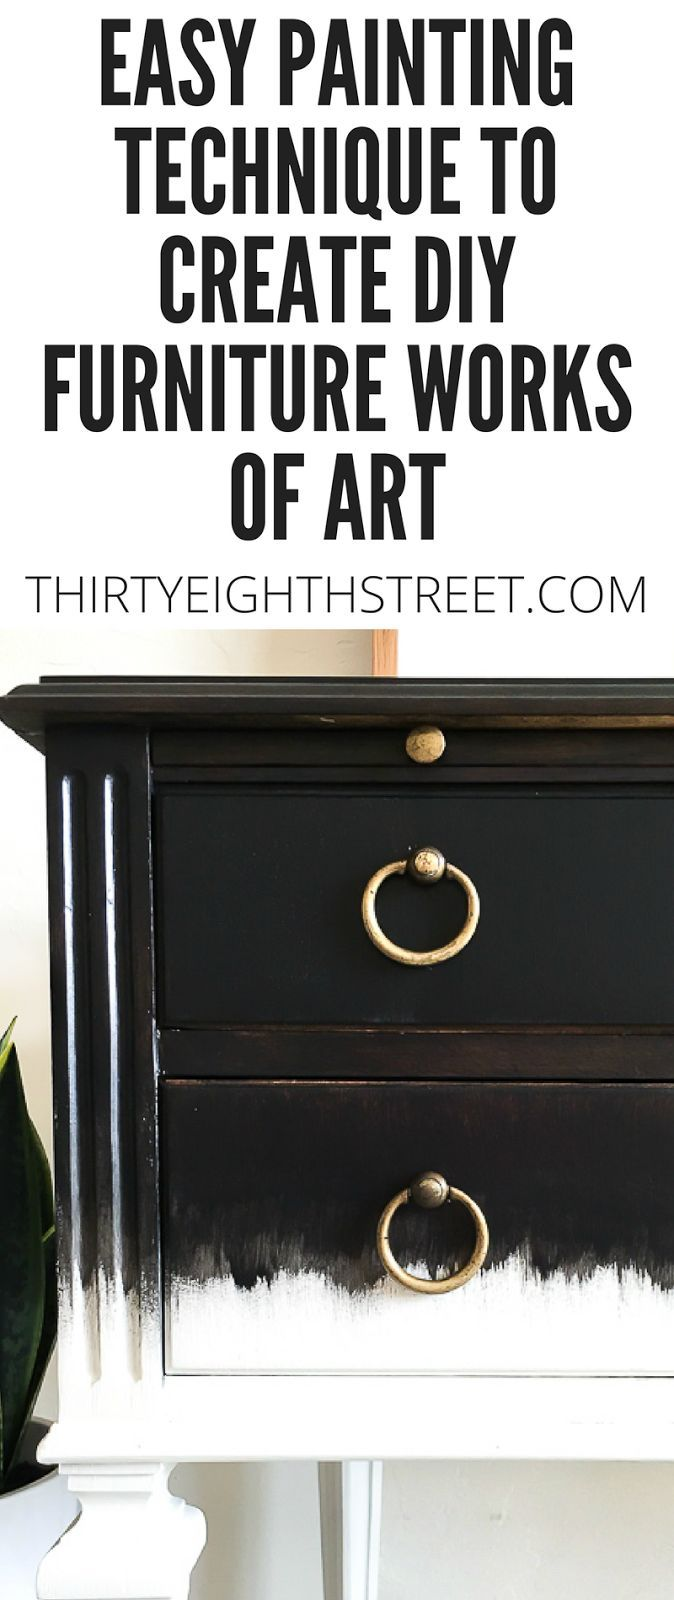 Learn how to use this easy Dry Brush Painting Technique to create furniture that looks like art! Follow this step by step guide and watch our video tutorial to see how we achieved this dry brushing paint technique on our furniture.  Thirty Eighth Street #